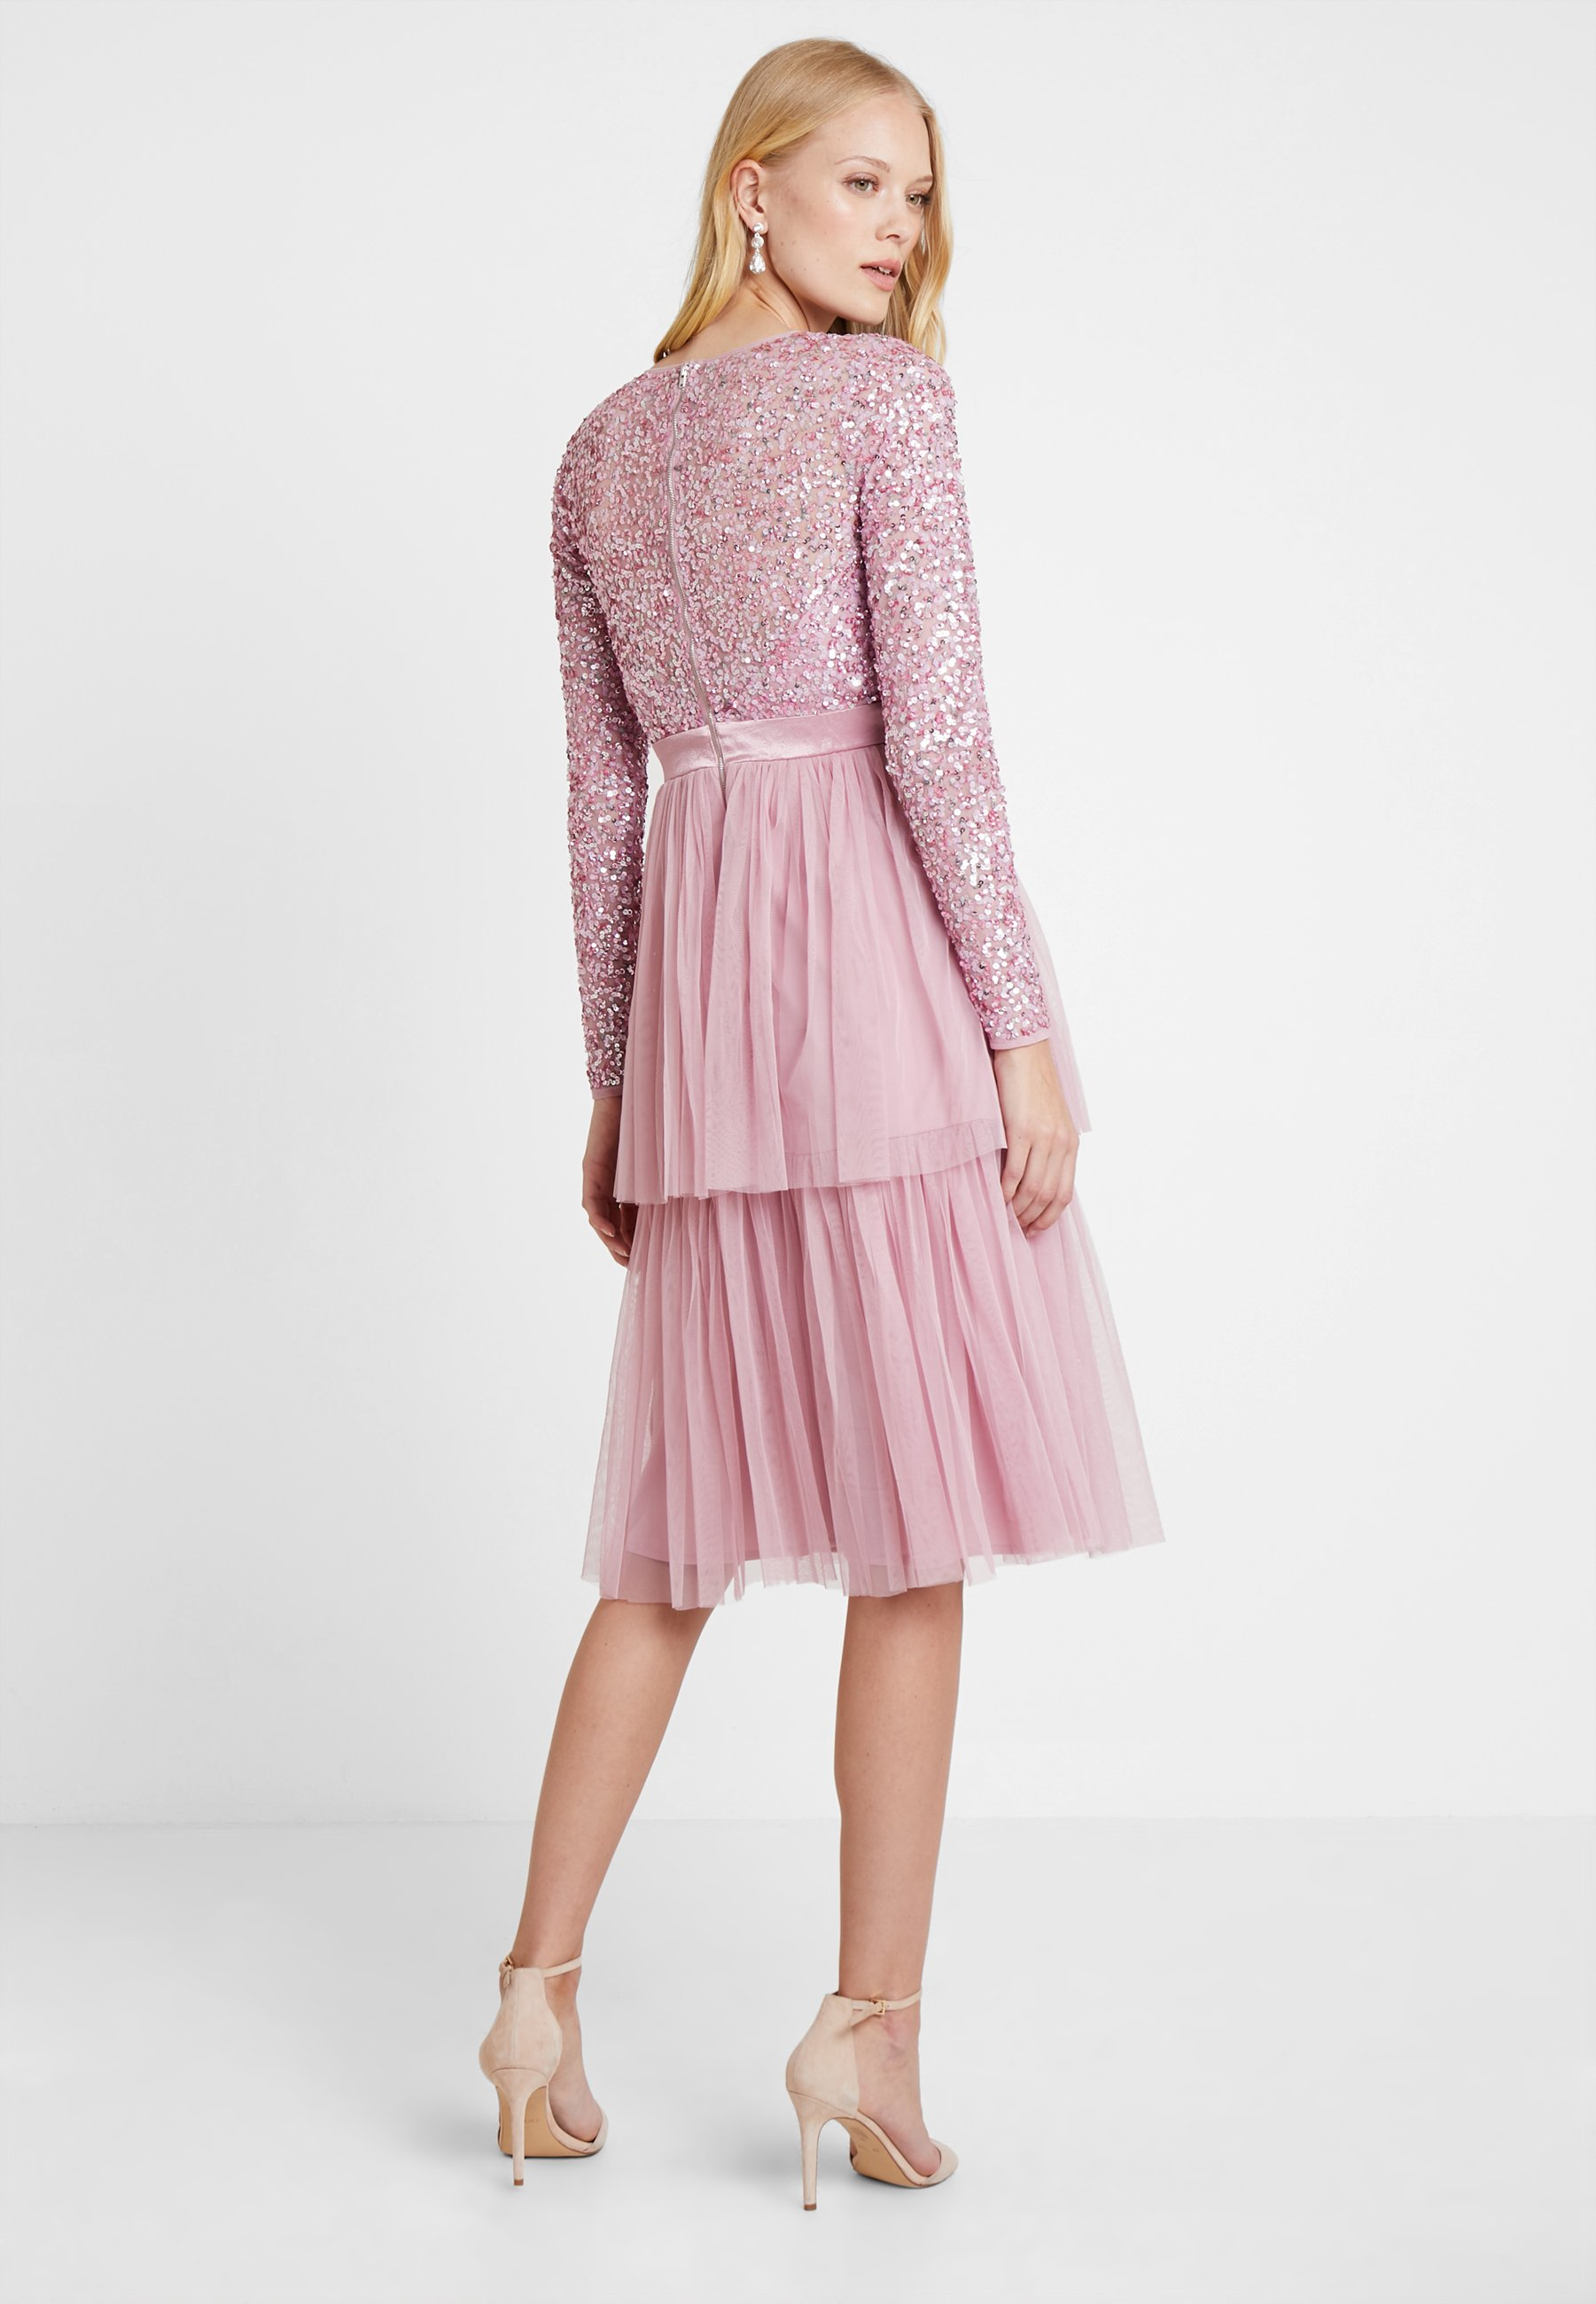 Embellished Midi Soirée Deluxe De Maya Pink Tiered Dress With BodiceRobe CdxerBoW